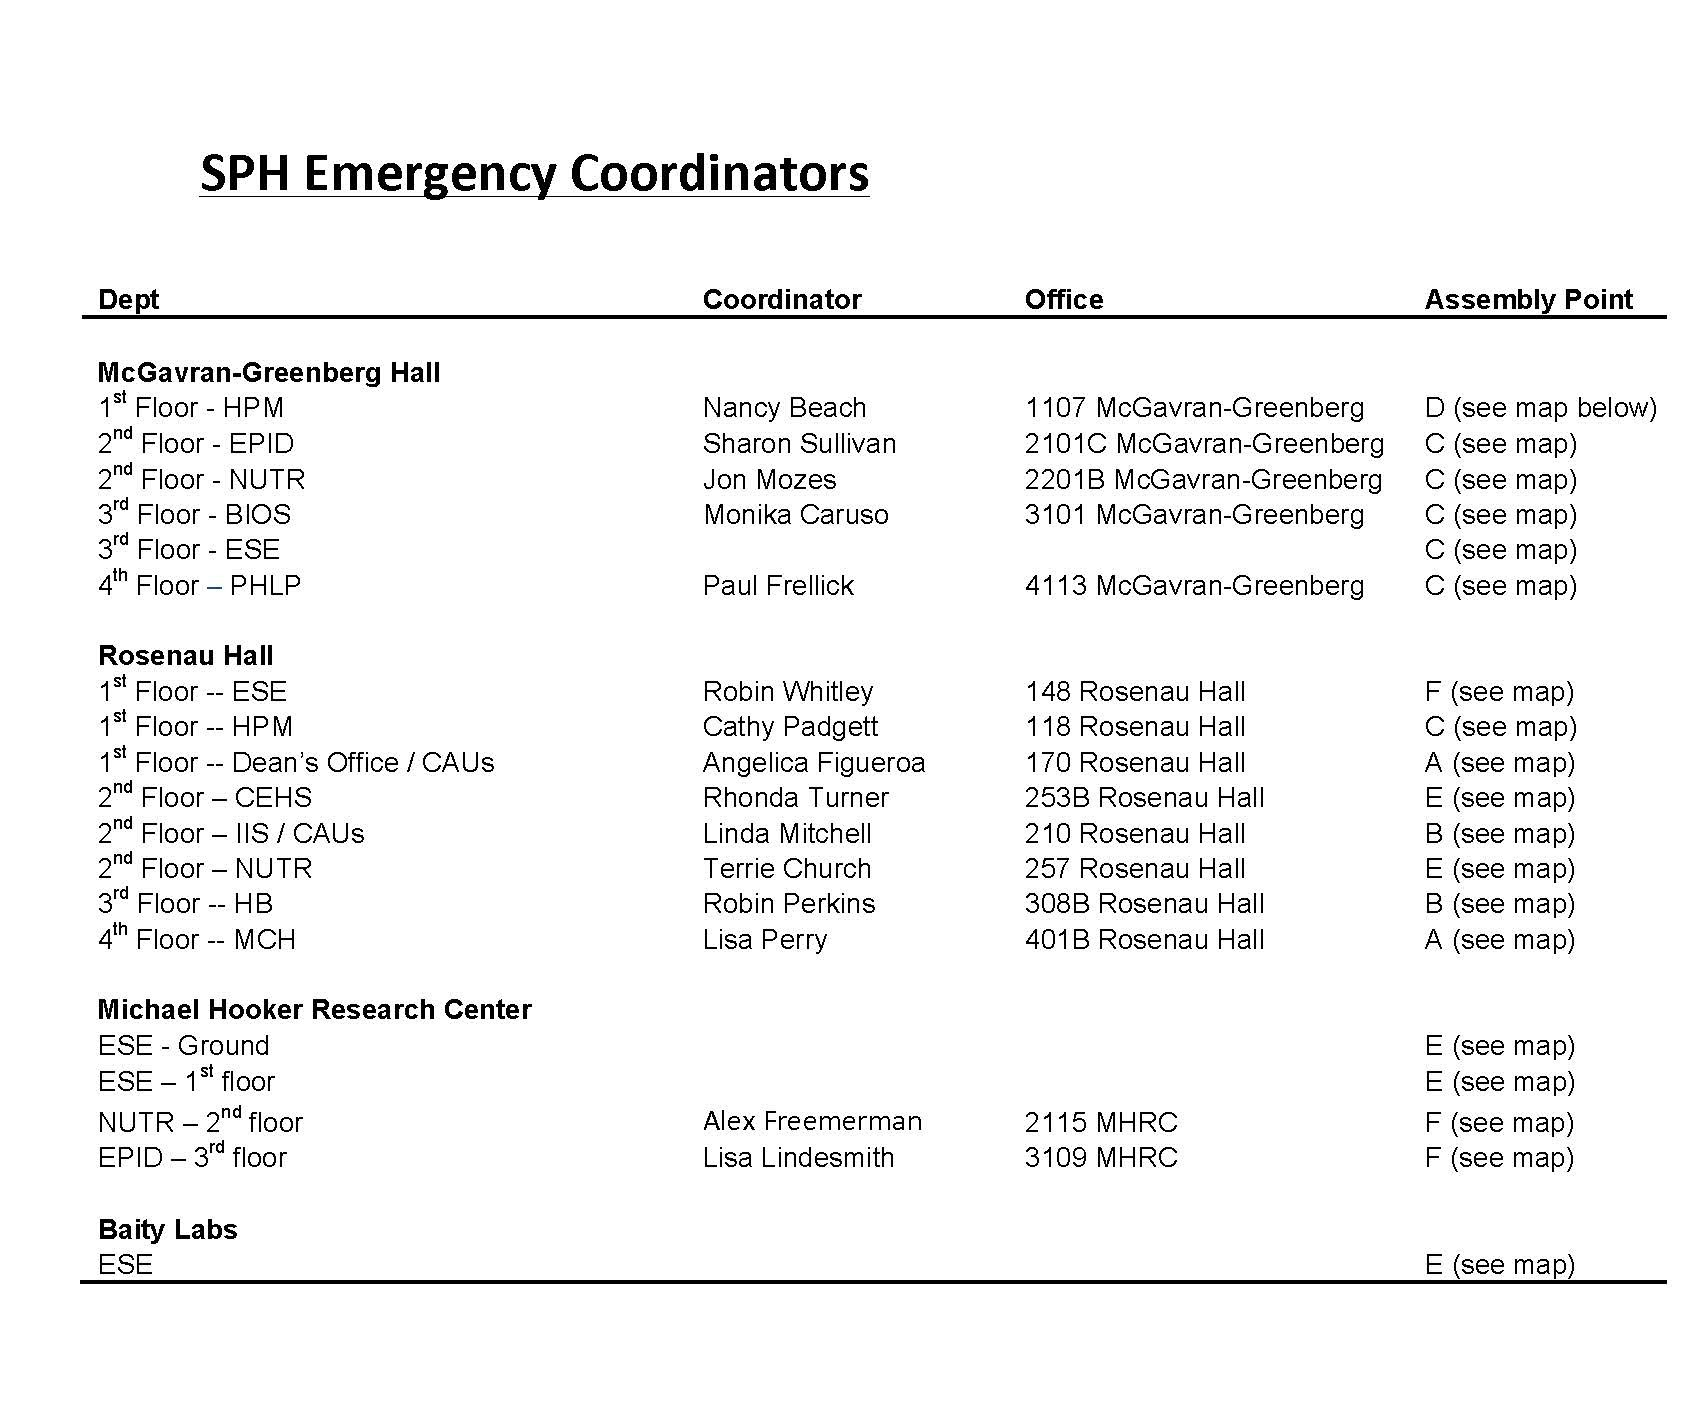 SPH-Emergency-Coordinators-10132014